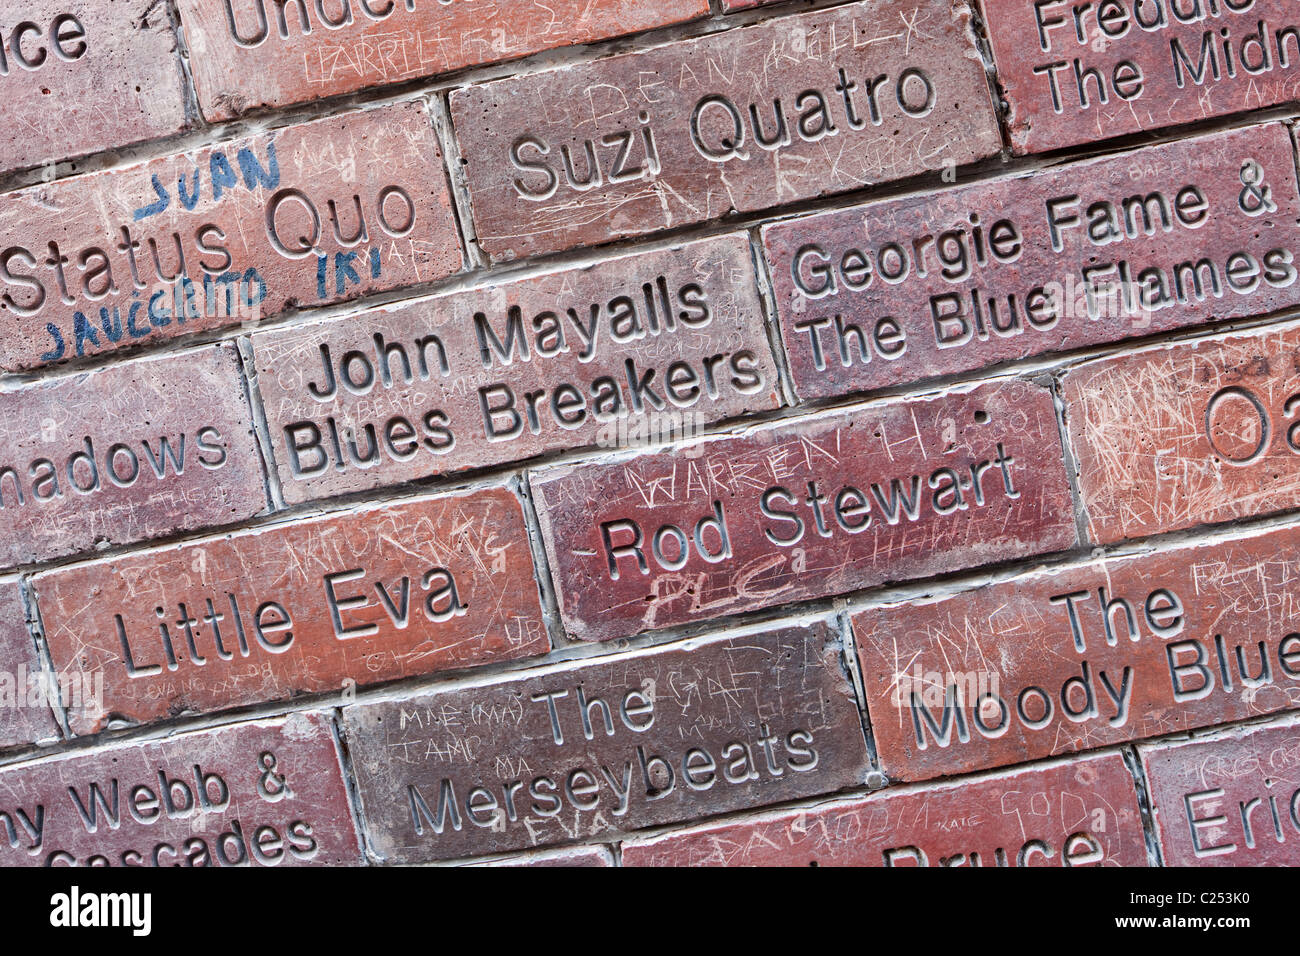 Brick wall with band names embossed, outside the famous Cavern Club, Liverpool - Stock Image